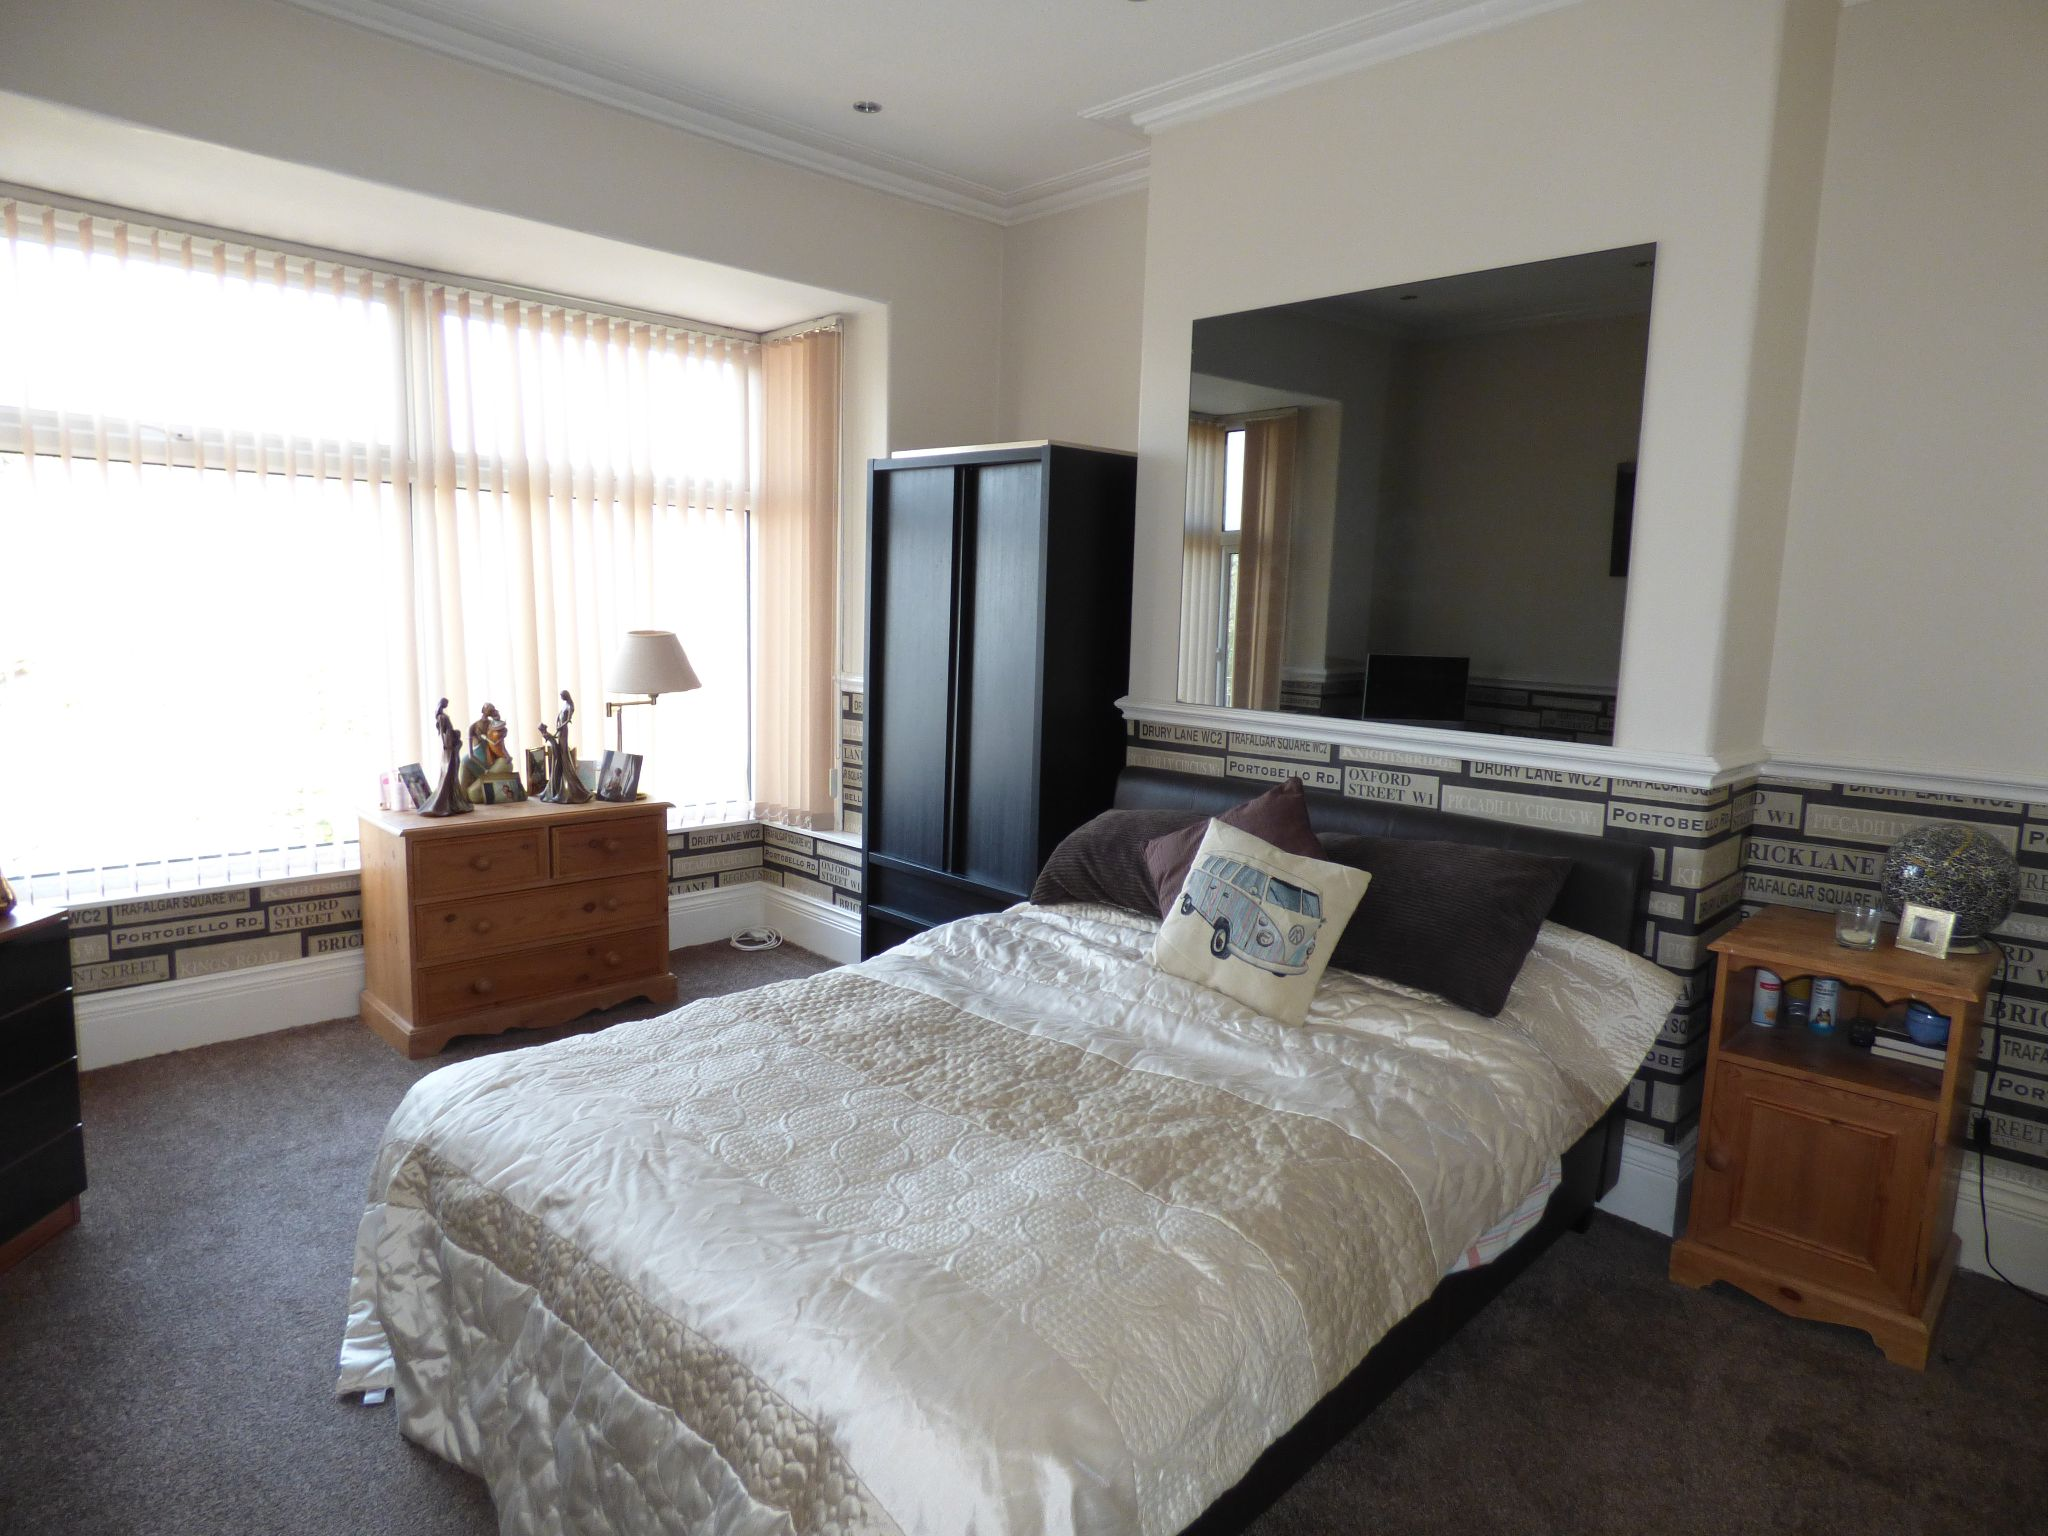 5 Bedroom Semi-detached House For Sale - Photograph 29